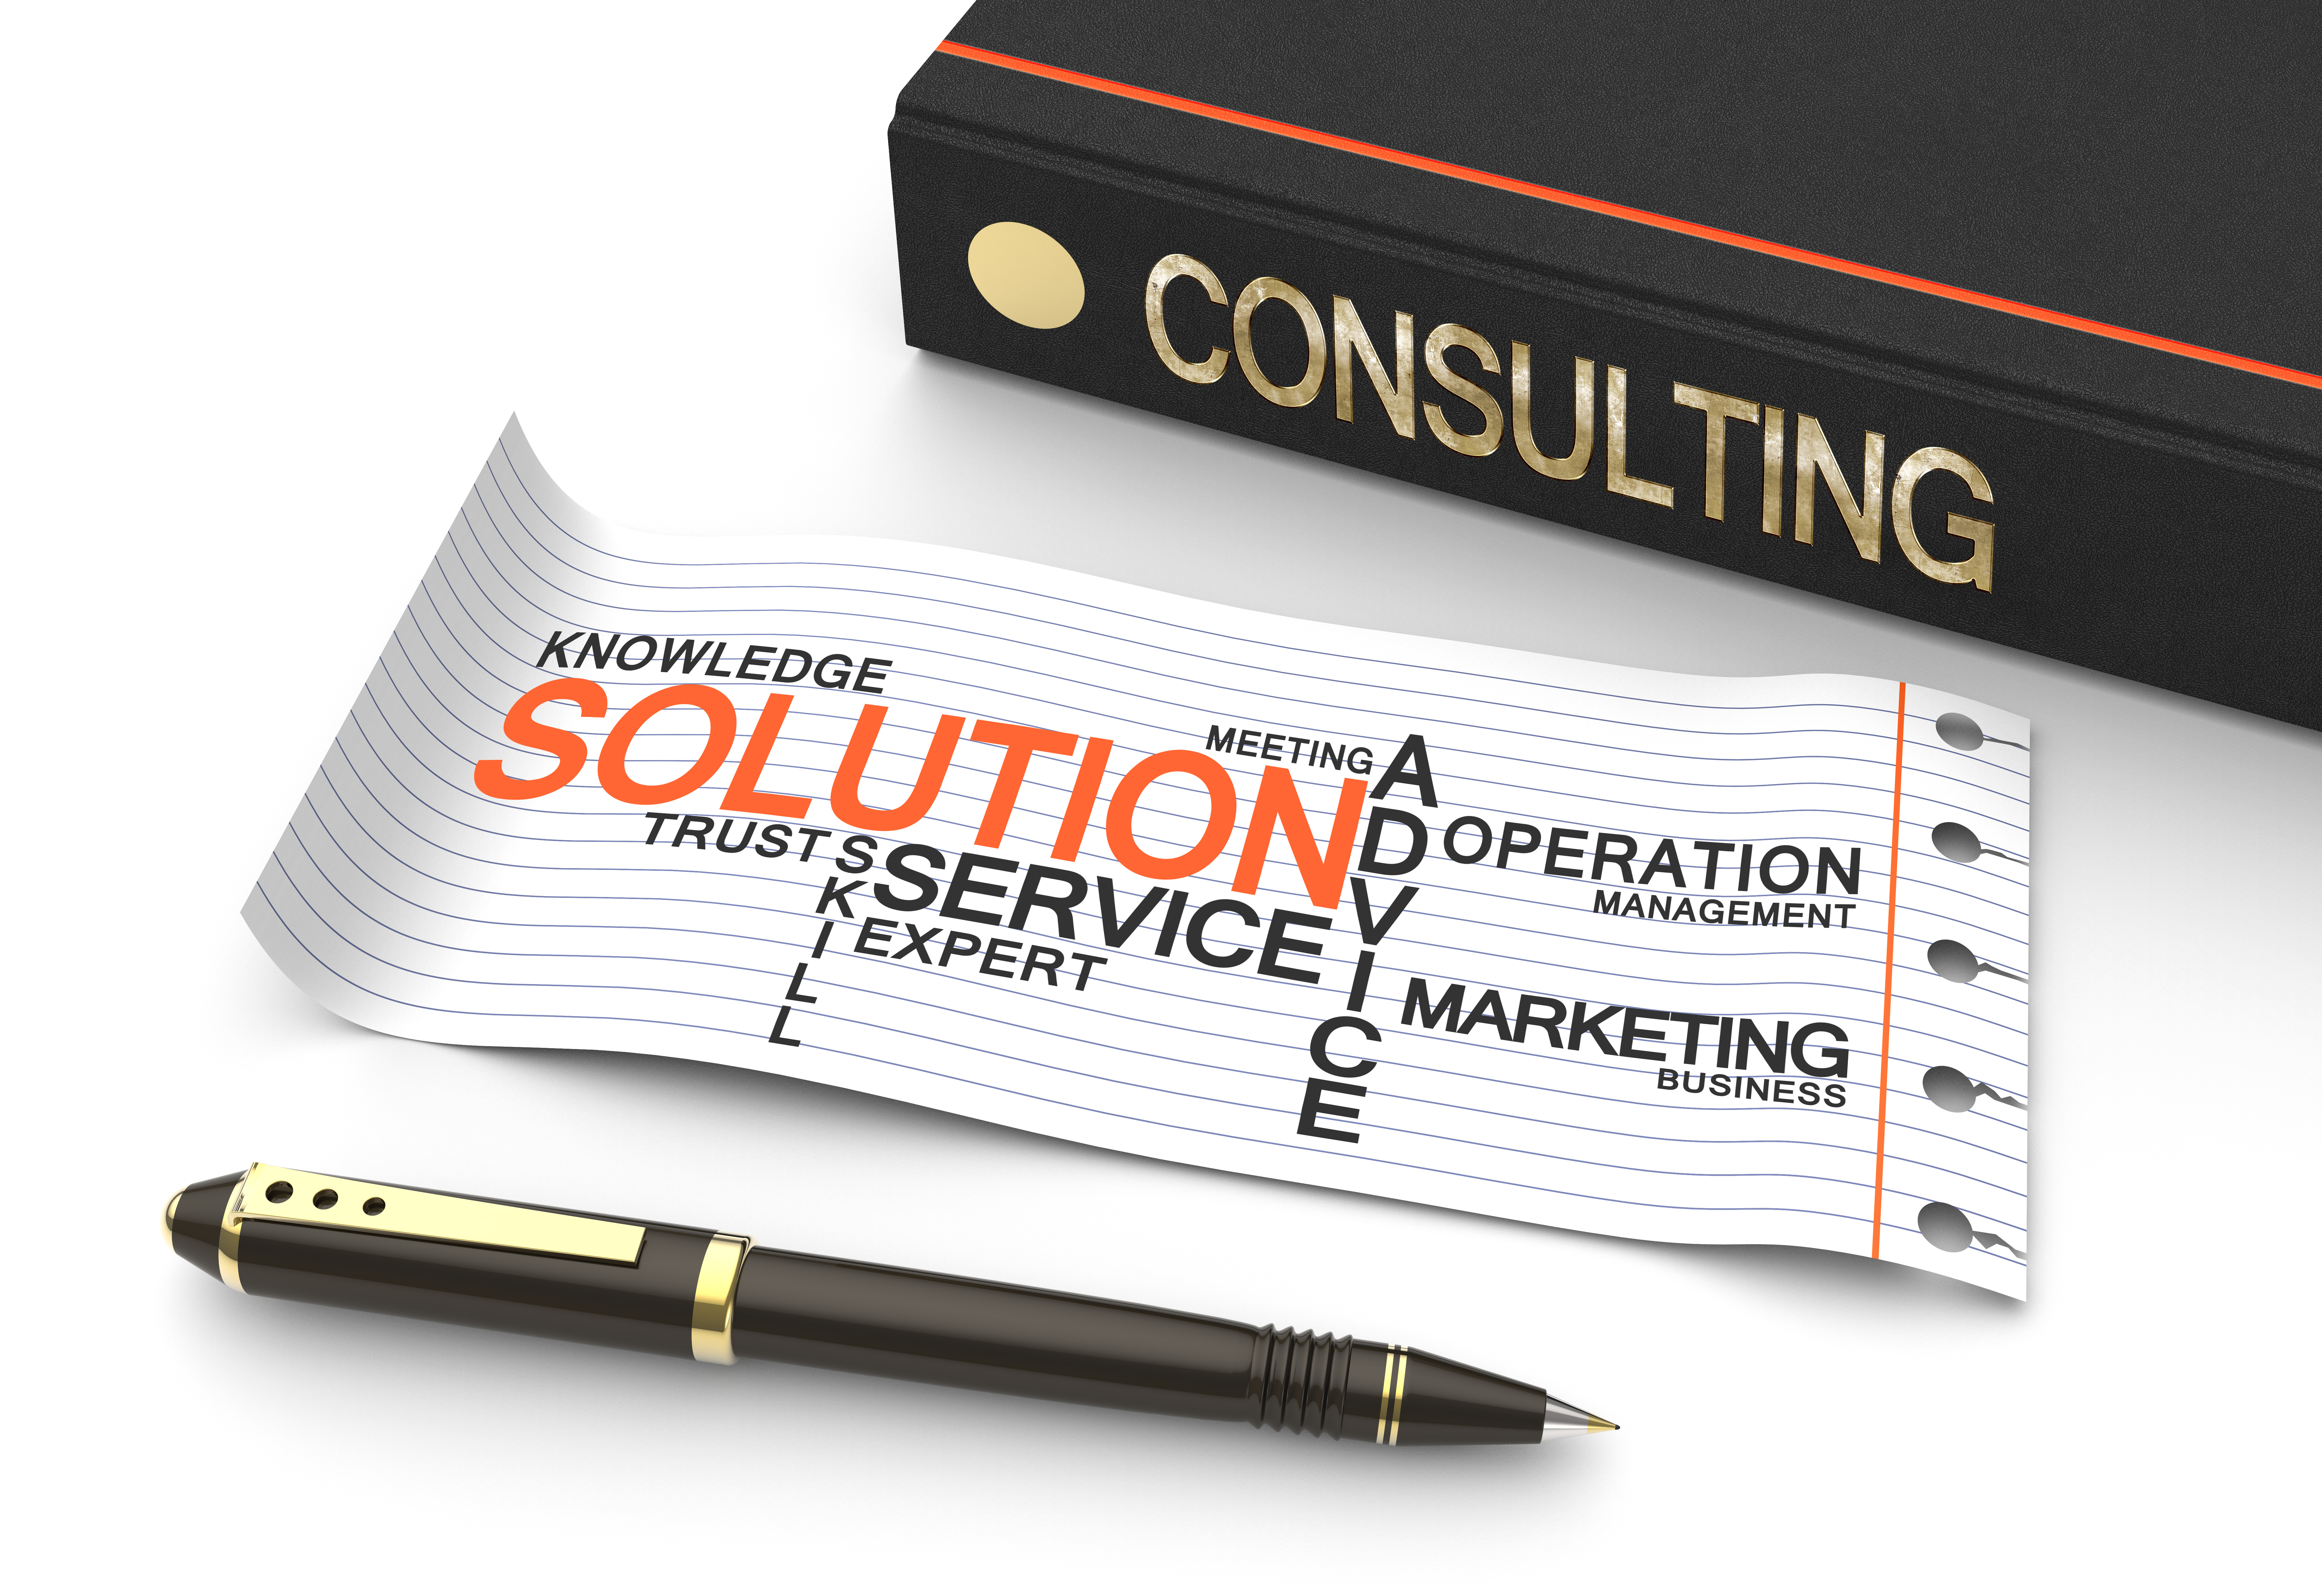 Musselwhite Marketing - 7 Ways a Marketing Consultant Can Help Grow Your Business